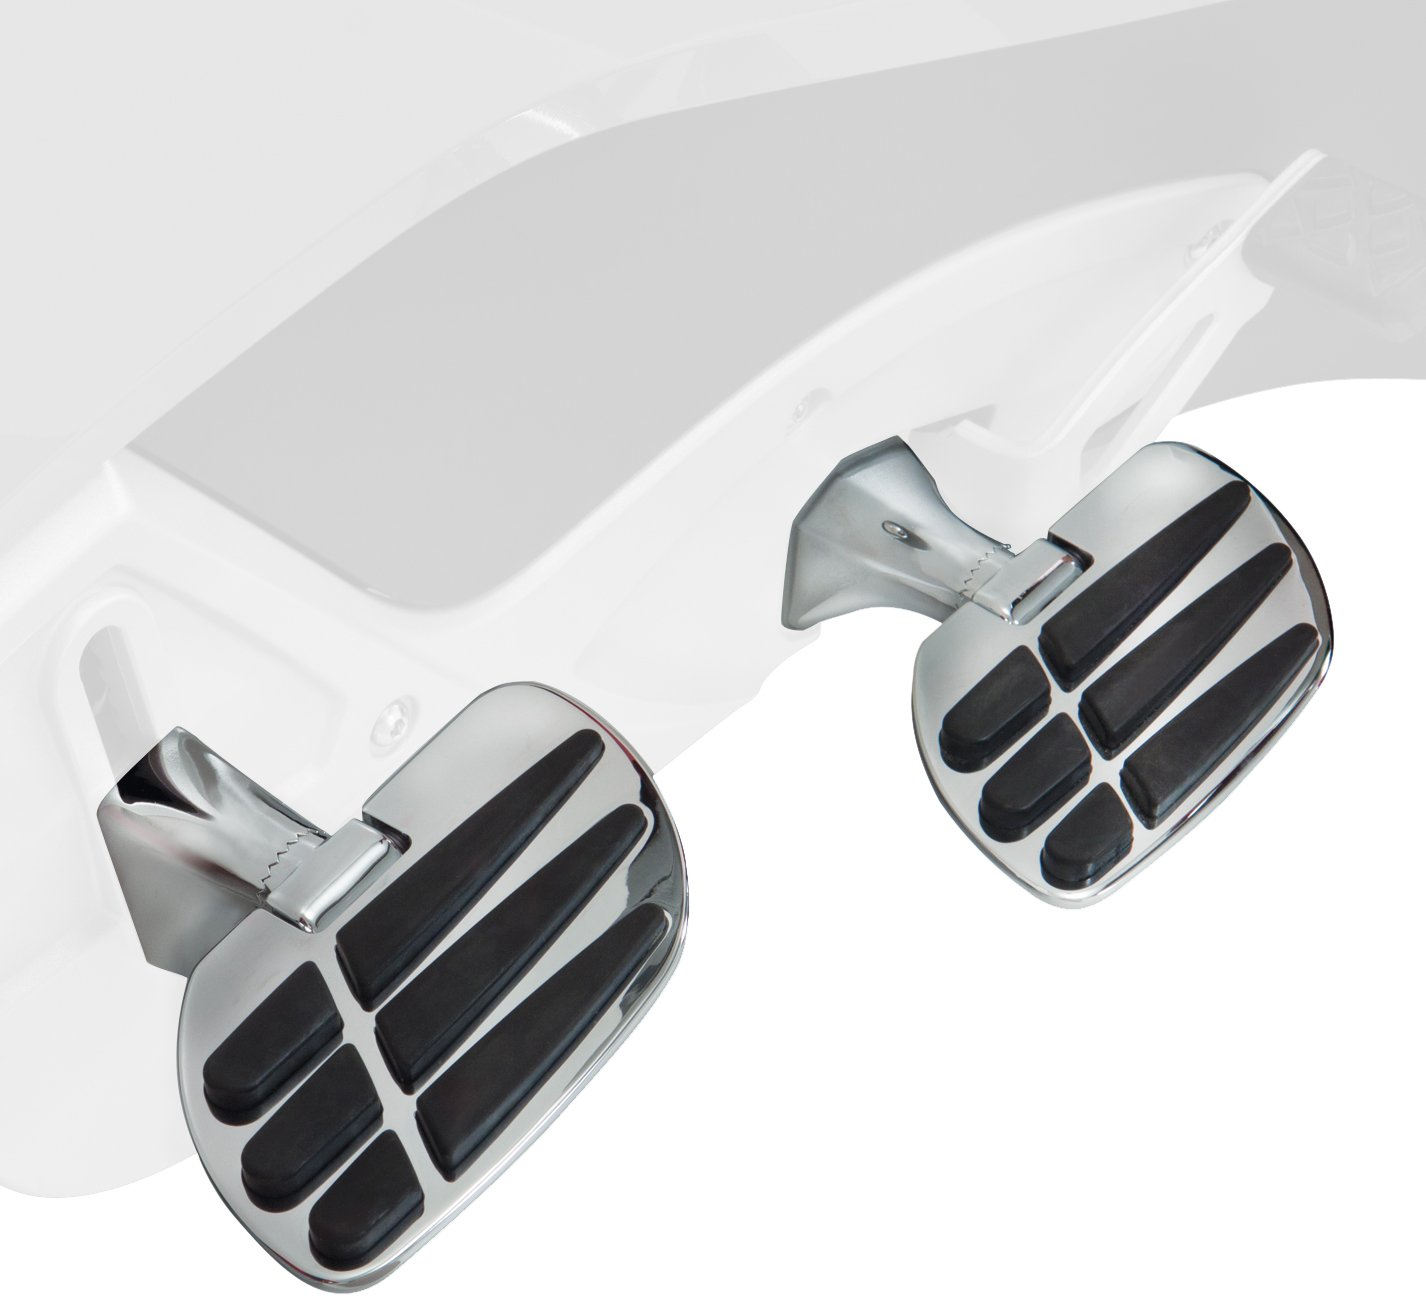 Show Chrome Accessories 41-154 Driver Floorboard System